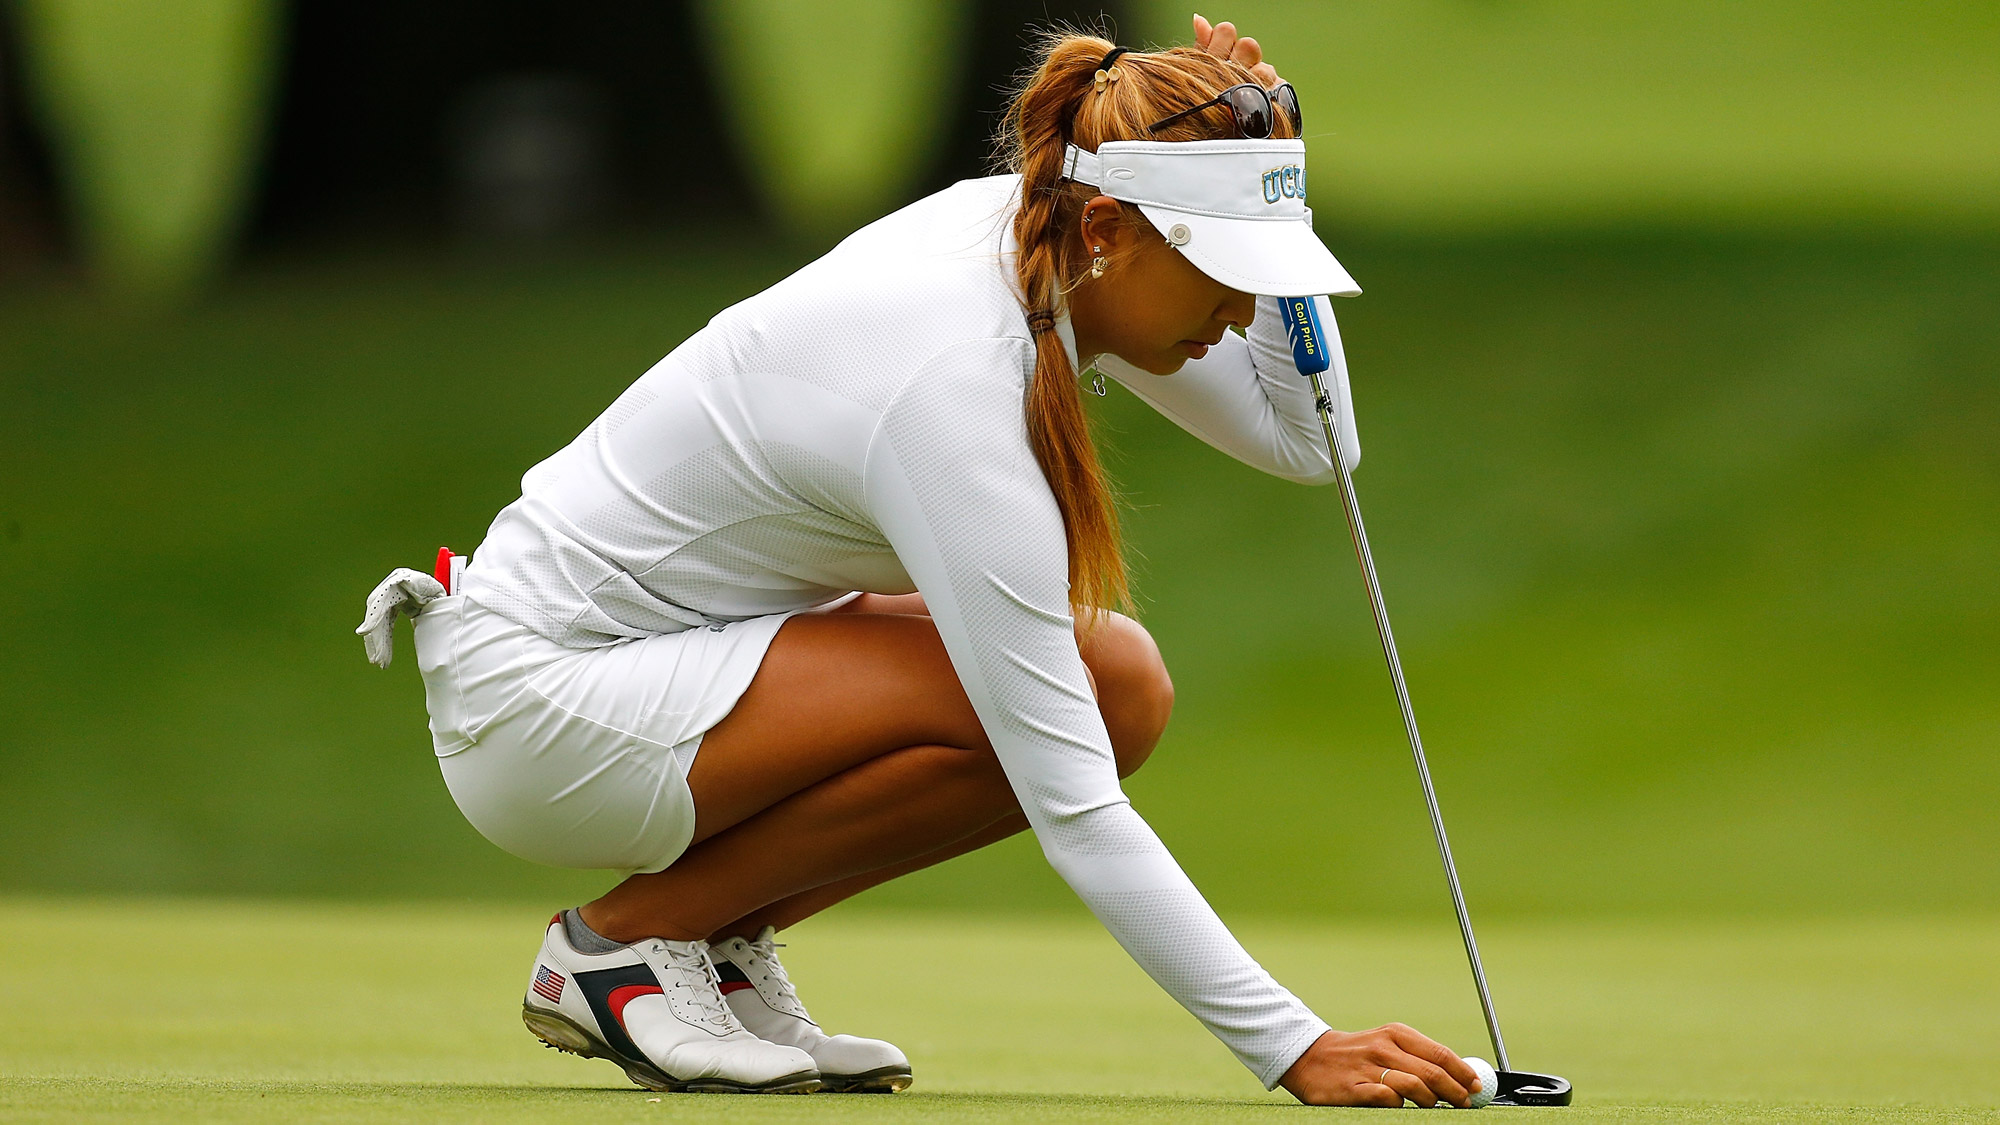 Alison Lee: Putt with Confidence